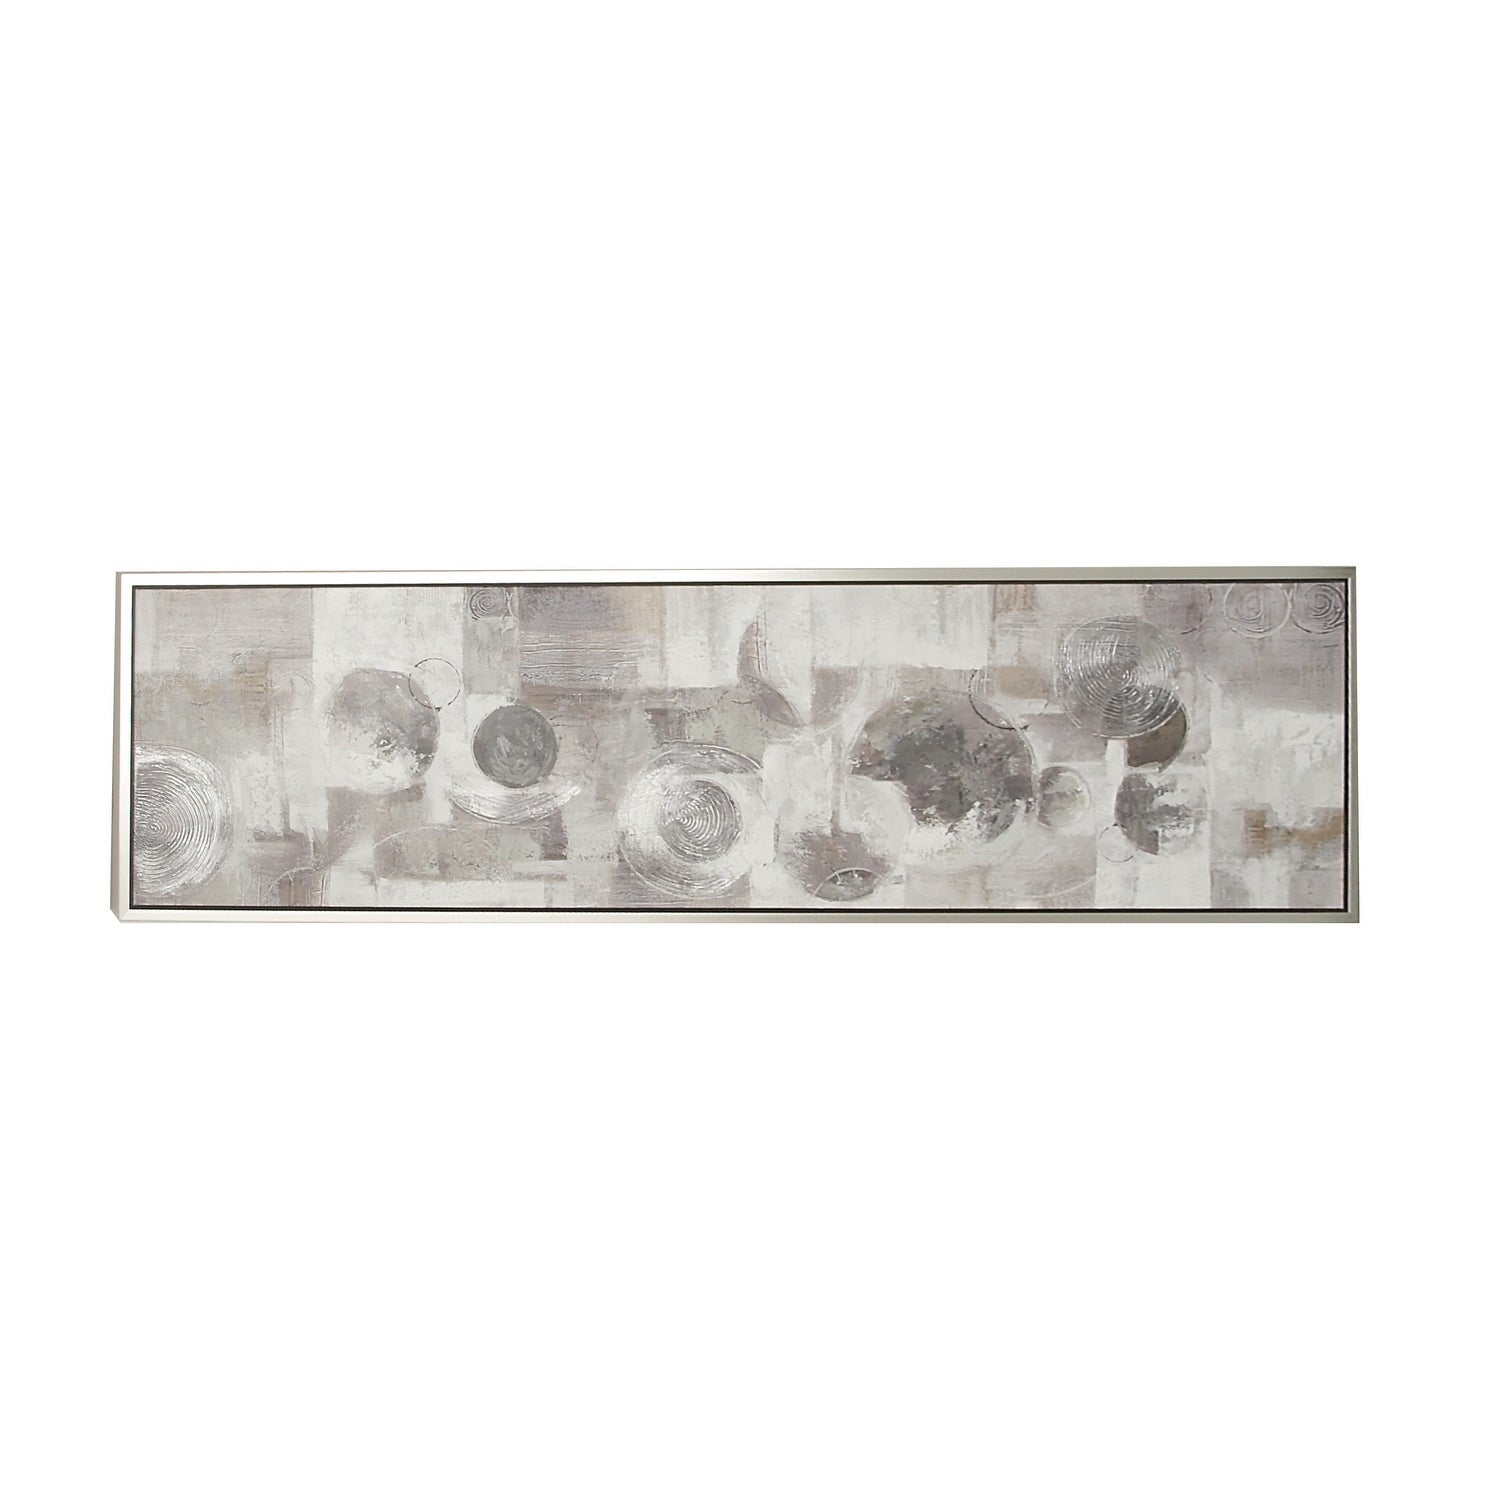 Large Rectangular Gray Black White Abstract Circles Contemporary Painting In Silver Frame 70 X 20 Grey